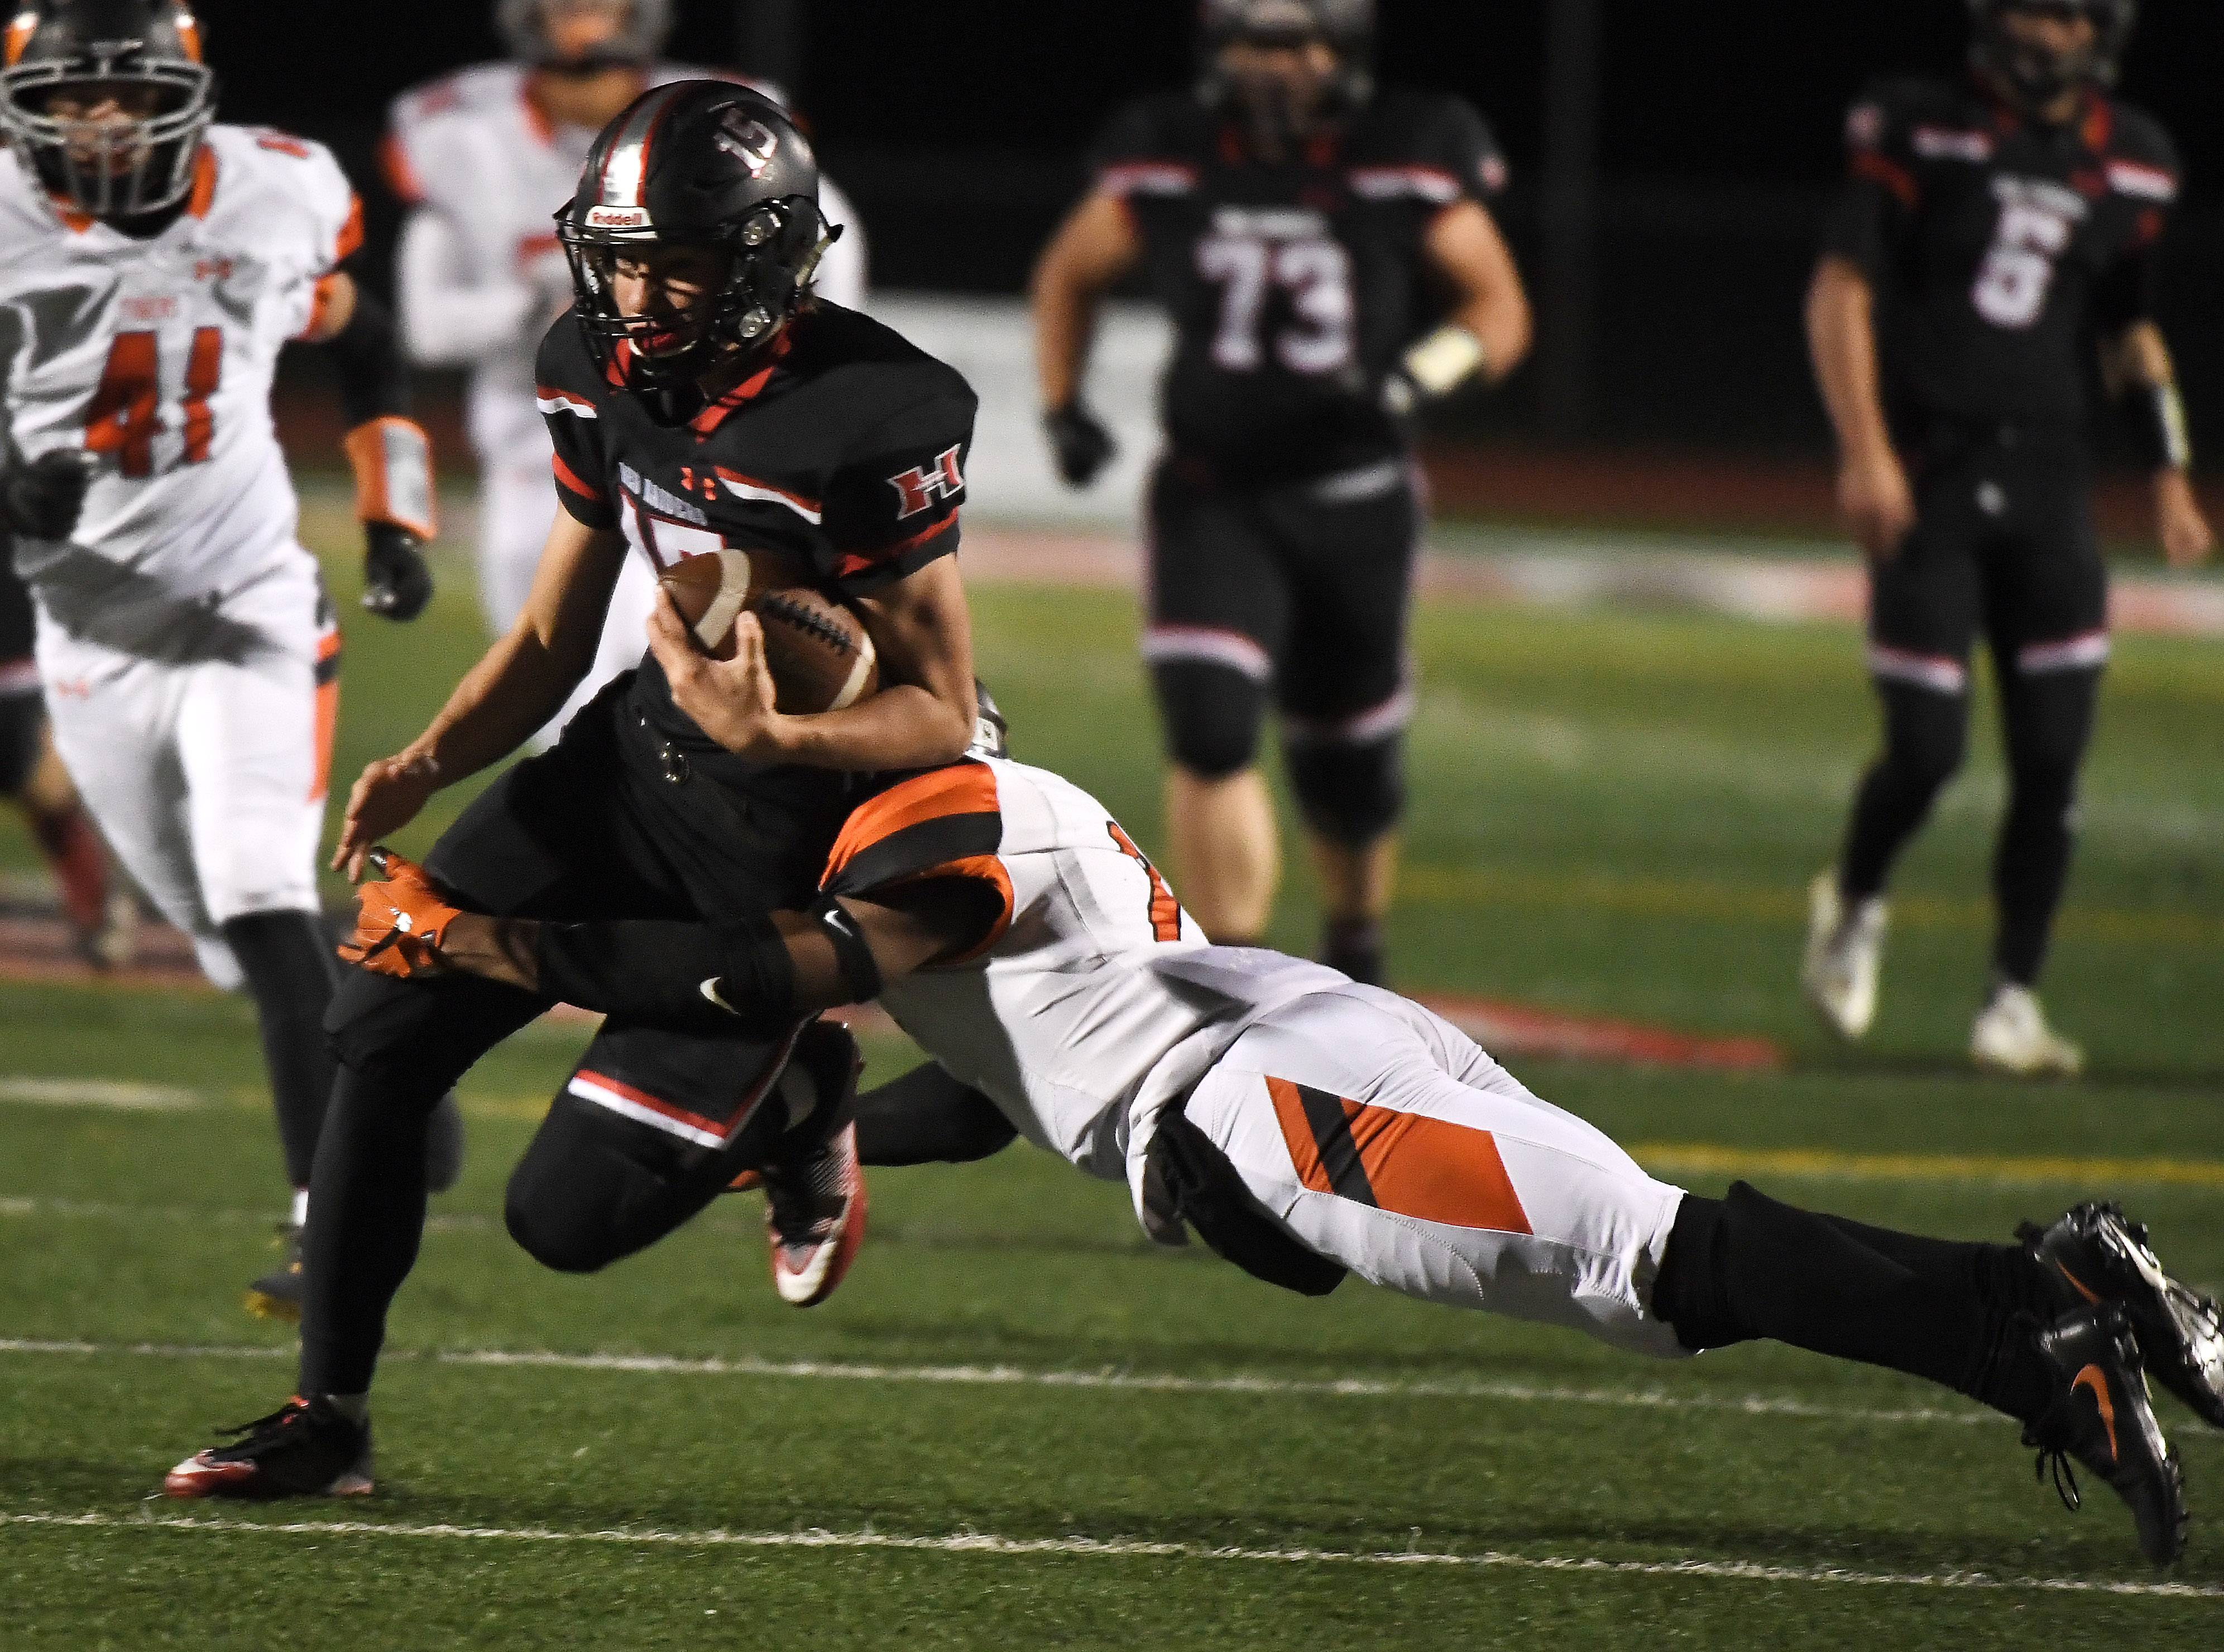 Huntley's Michael Boland (15) picks up some yards after the catch during first-round playoff action last season. Boland returns for the Red Raiders this season.